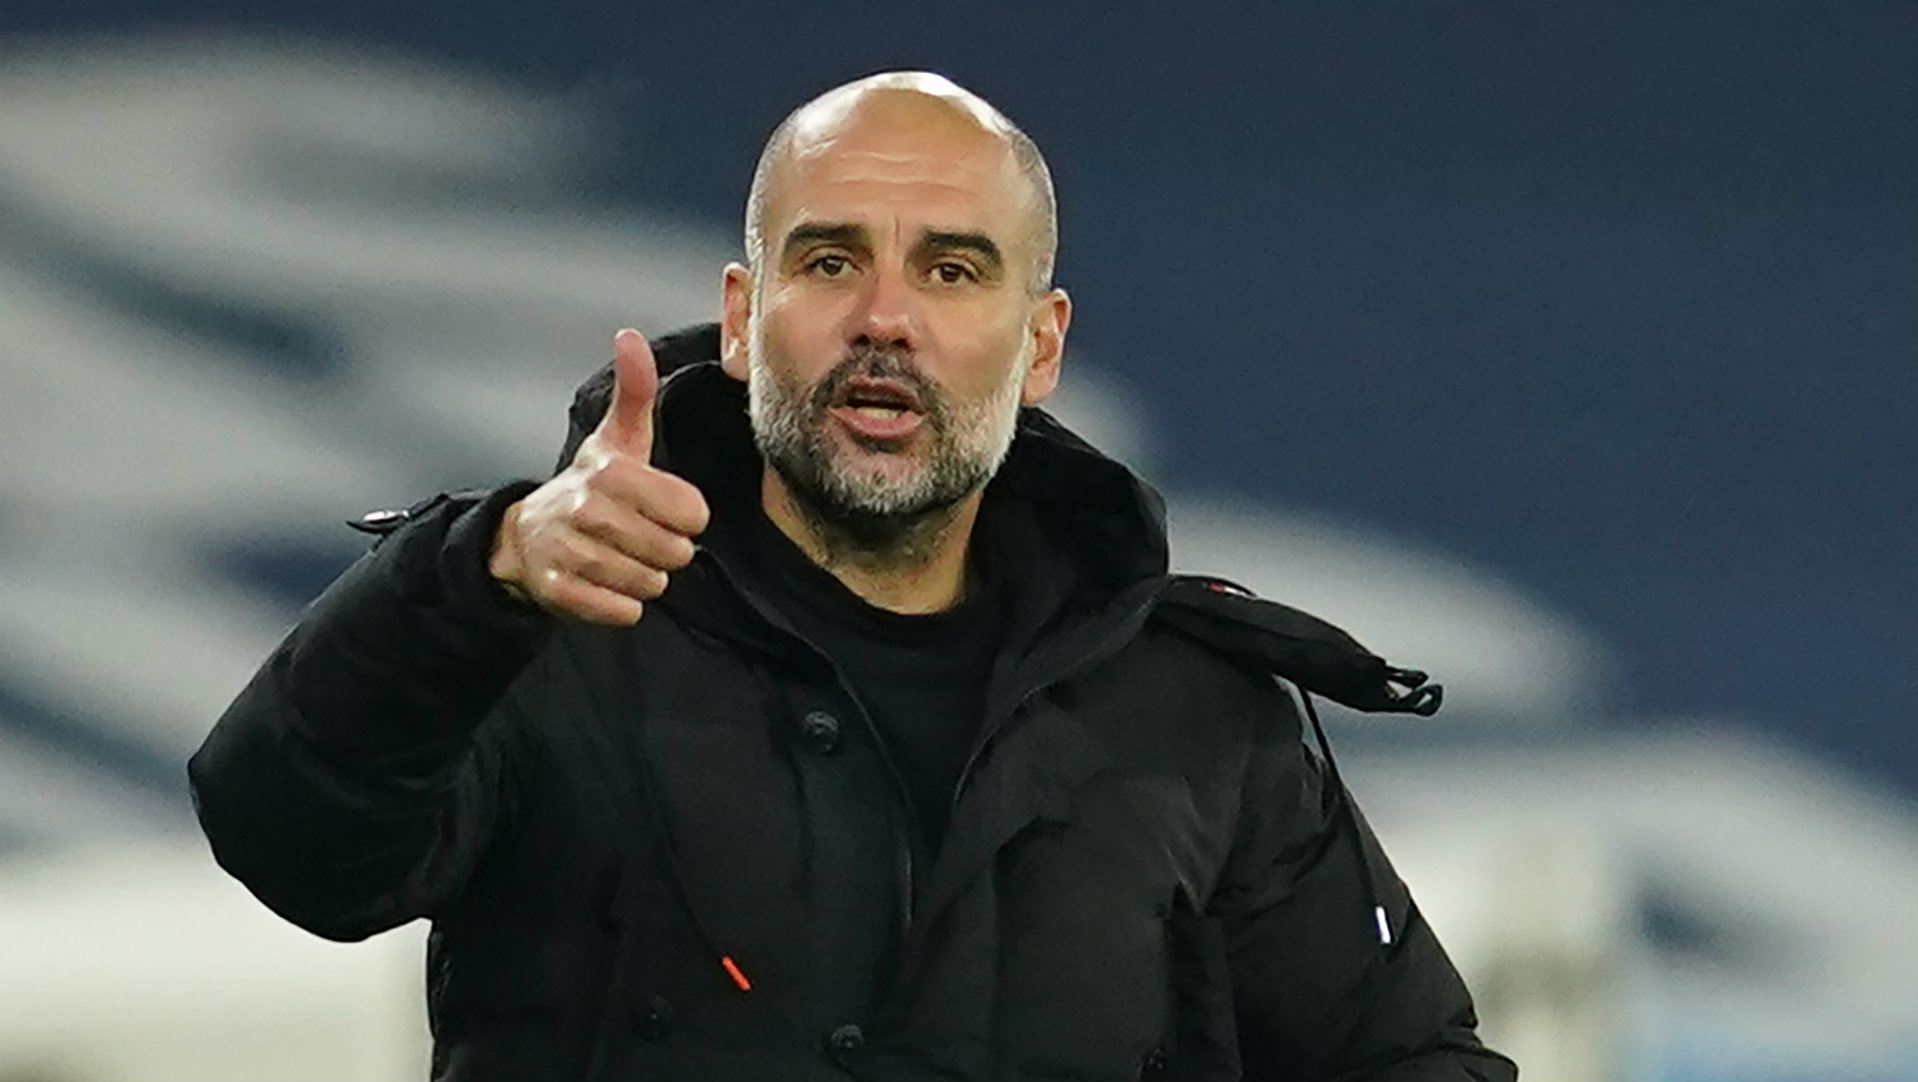 Pep hails Aguero ahead of his last game for City.